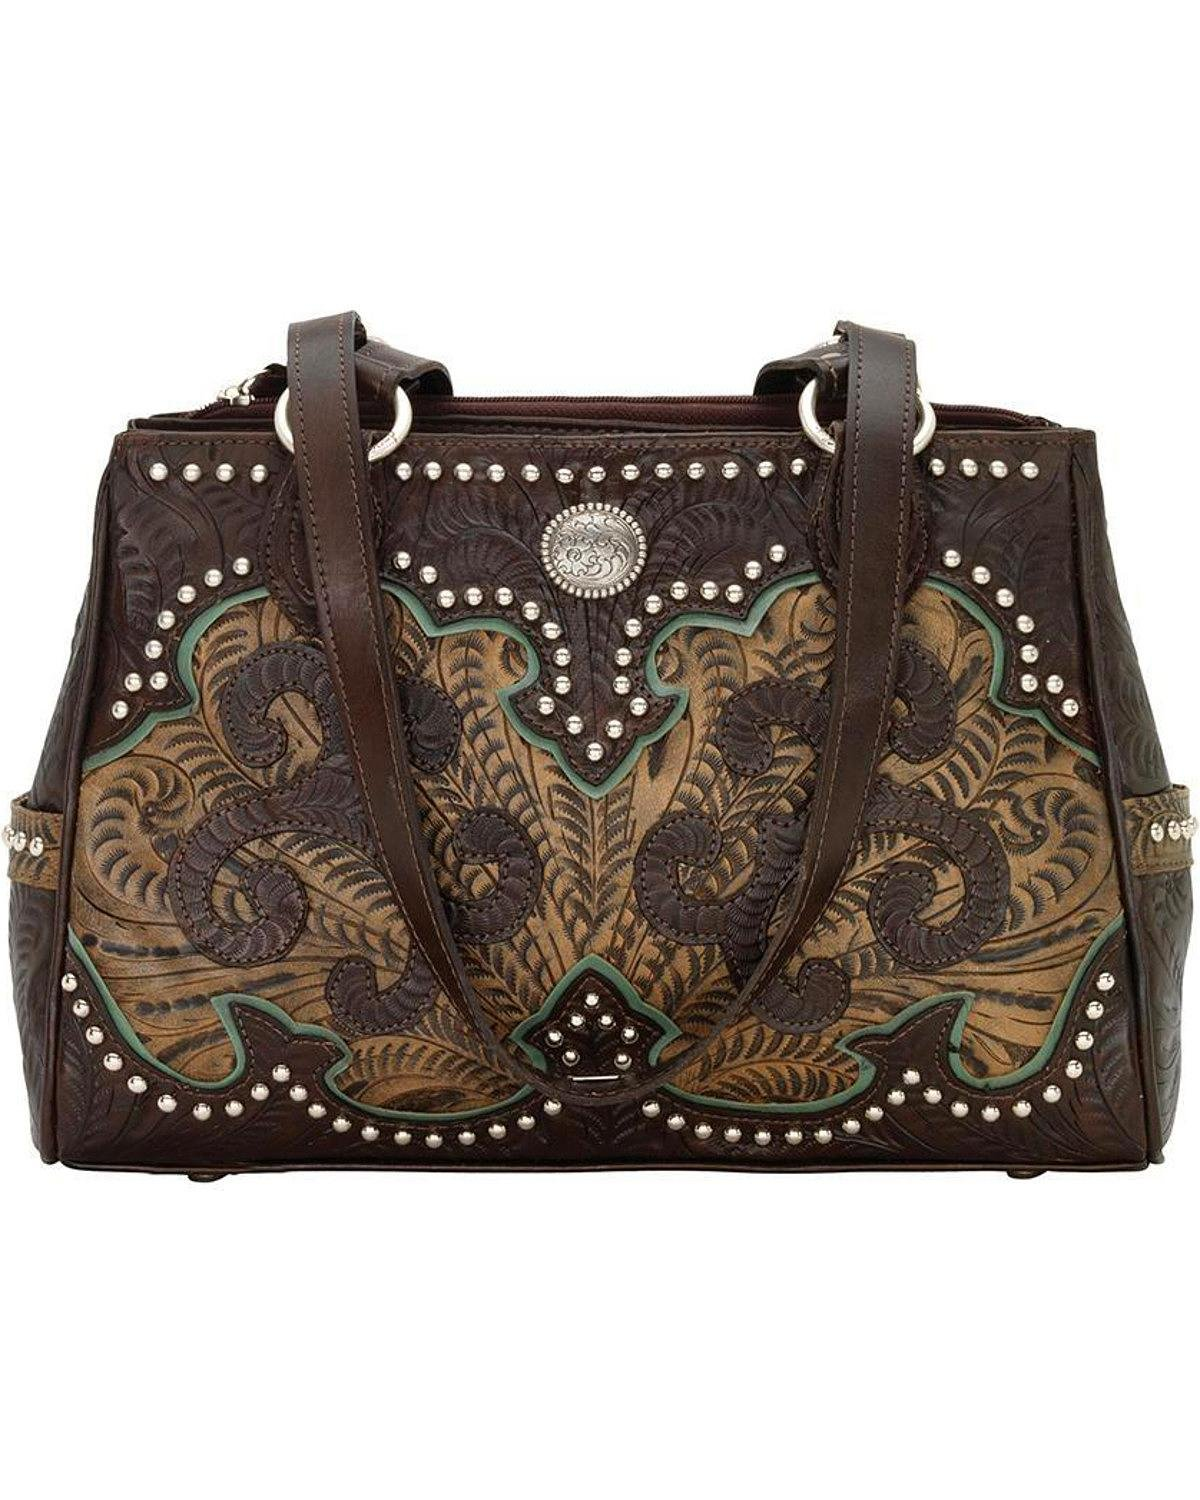 American West Women's Hand Tooled Concealed Carry Multi-Compartment Tote Chocolate One Size